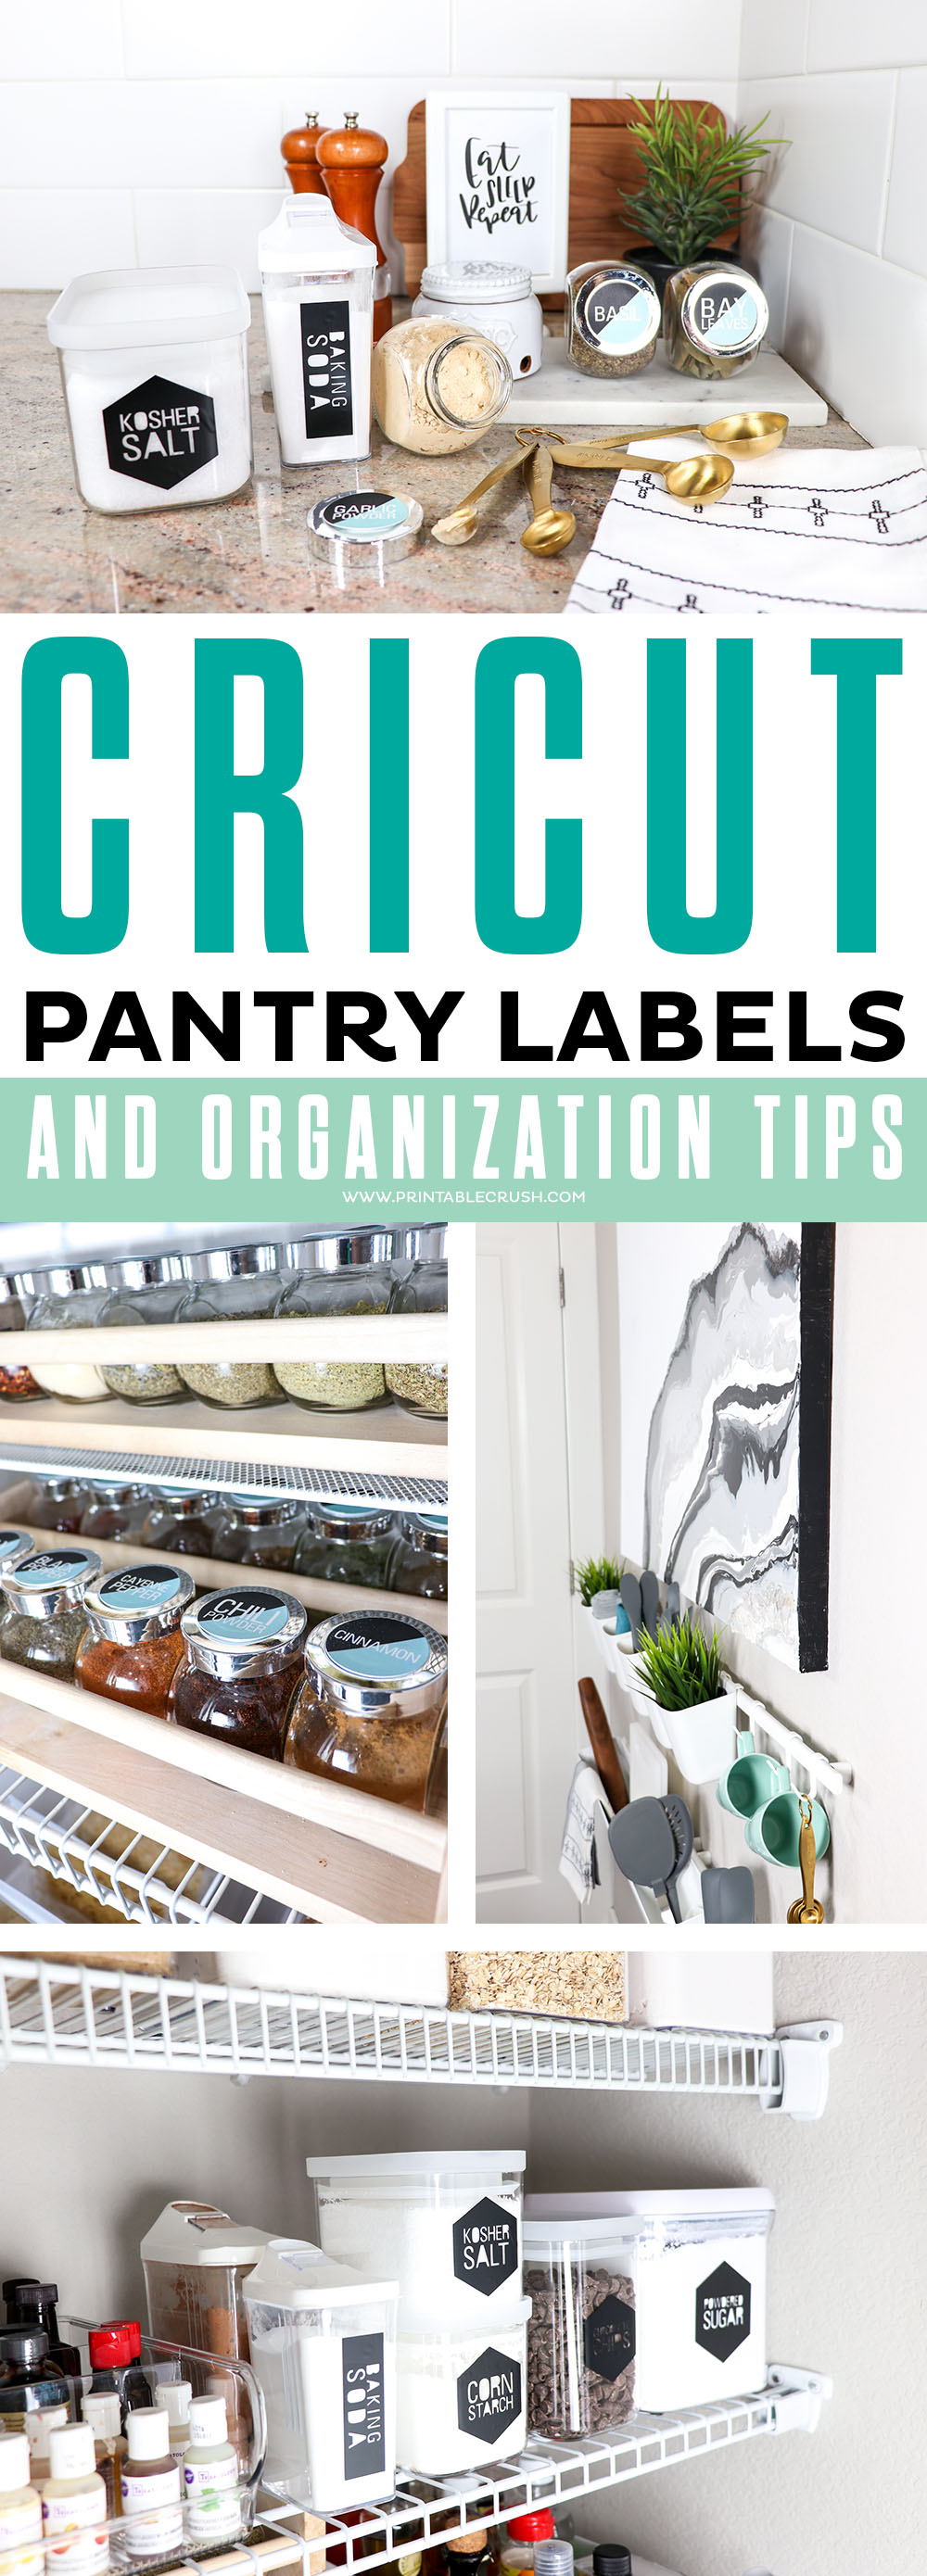 Get these FREE Modern Cricut Pantry Labels and some pantry organization tips to keep your kitchen tidy! #cricutmade #cricutmaker #vinylpantrylabels #pantrylabels #kitchendecor #moderndecor #cricutcrafts #homedecor #organization #pantry